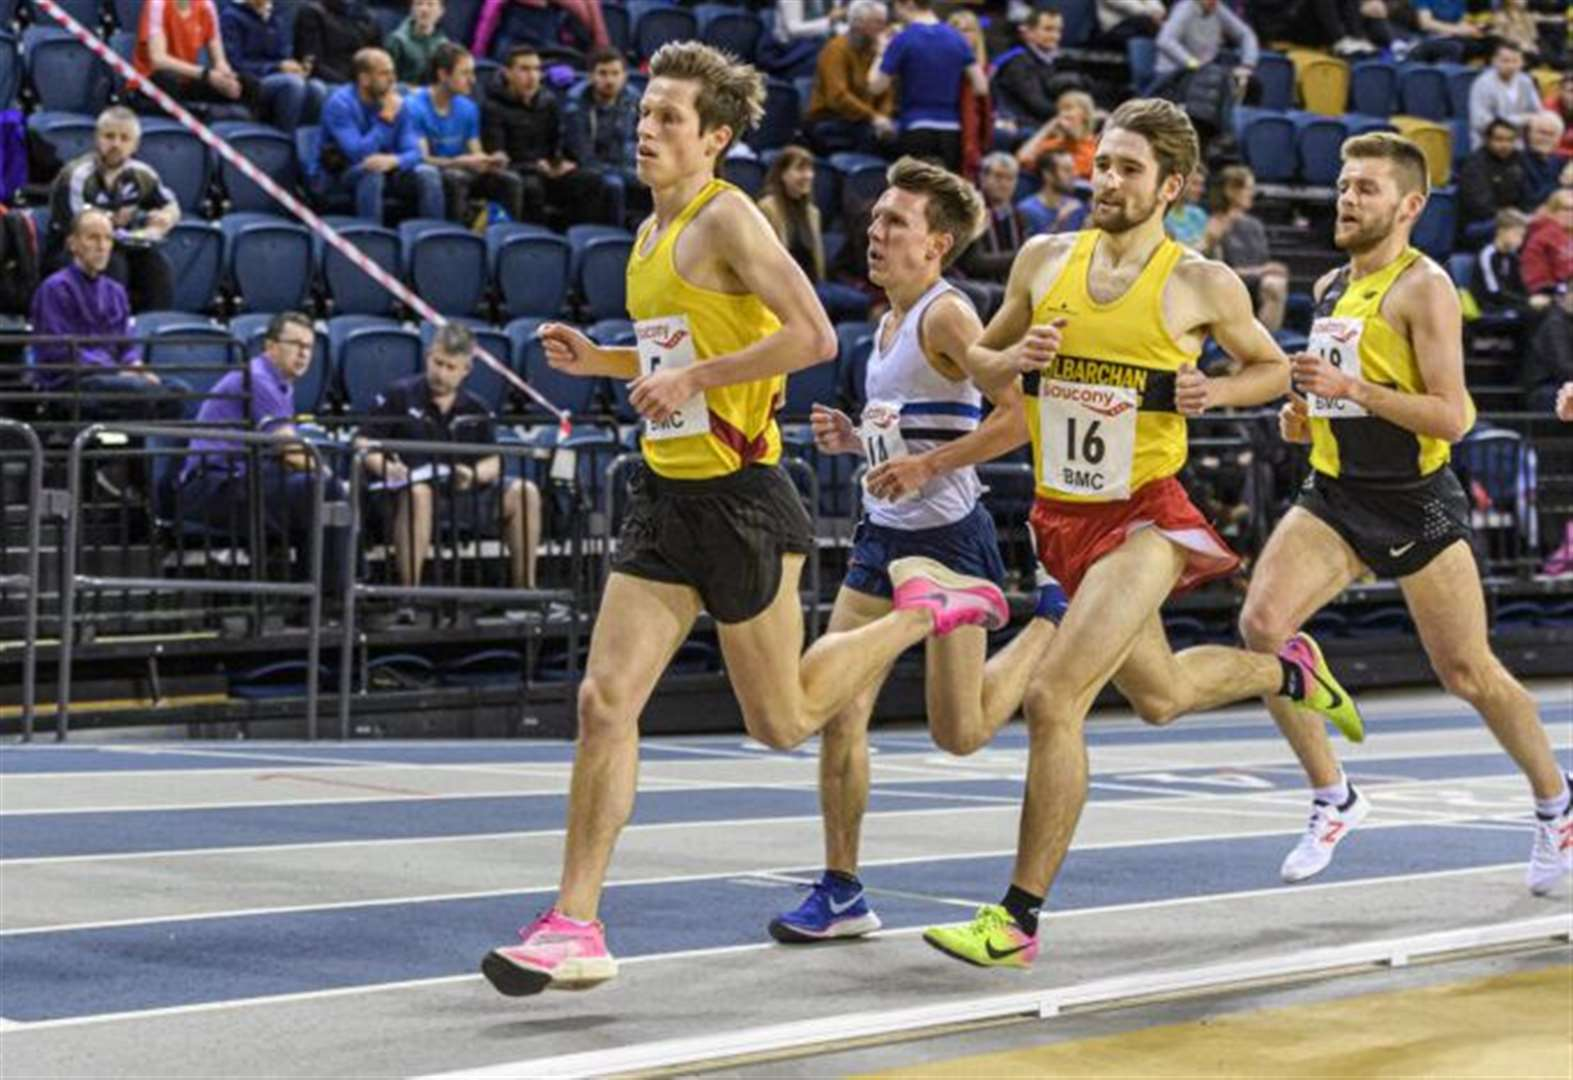 Major breakthrough for Inverness athlete over 3000 metres